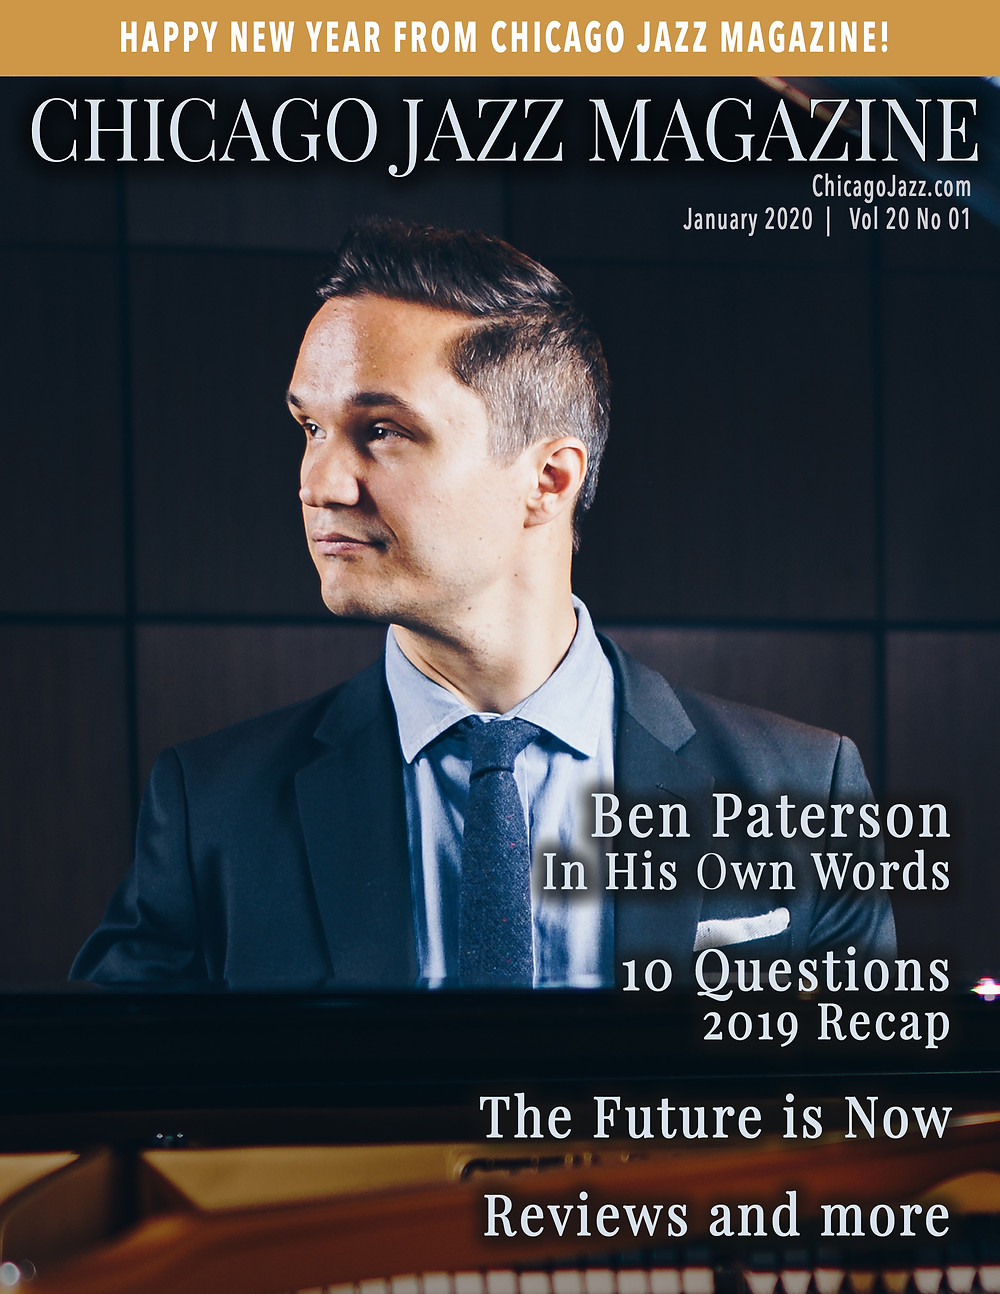 Chicago Jazz Magazine Cover with Ben Paterson